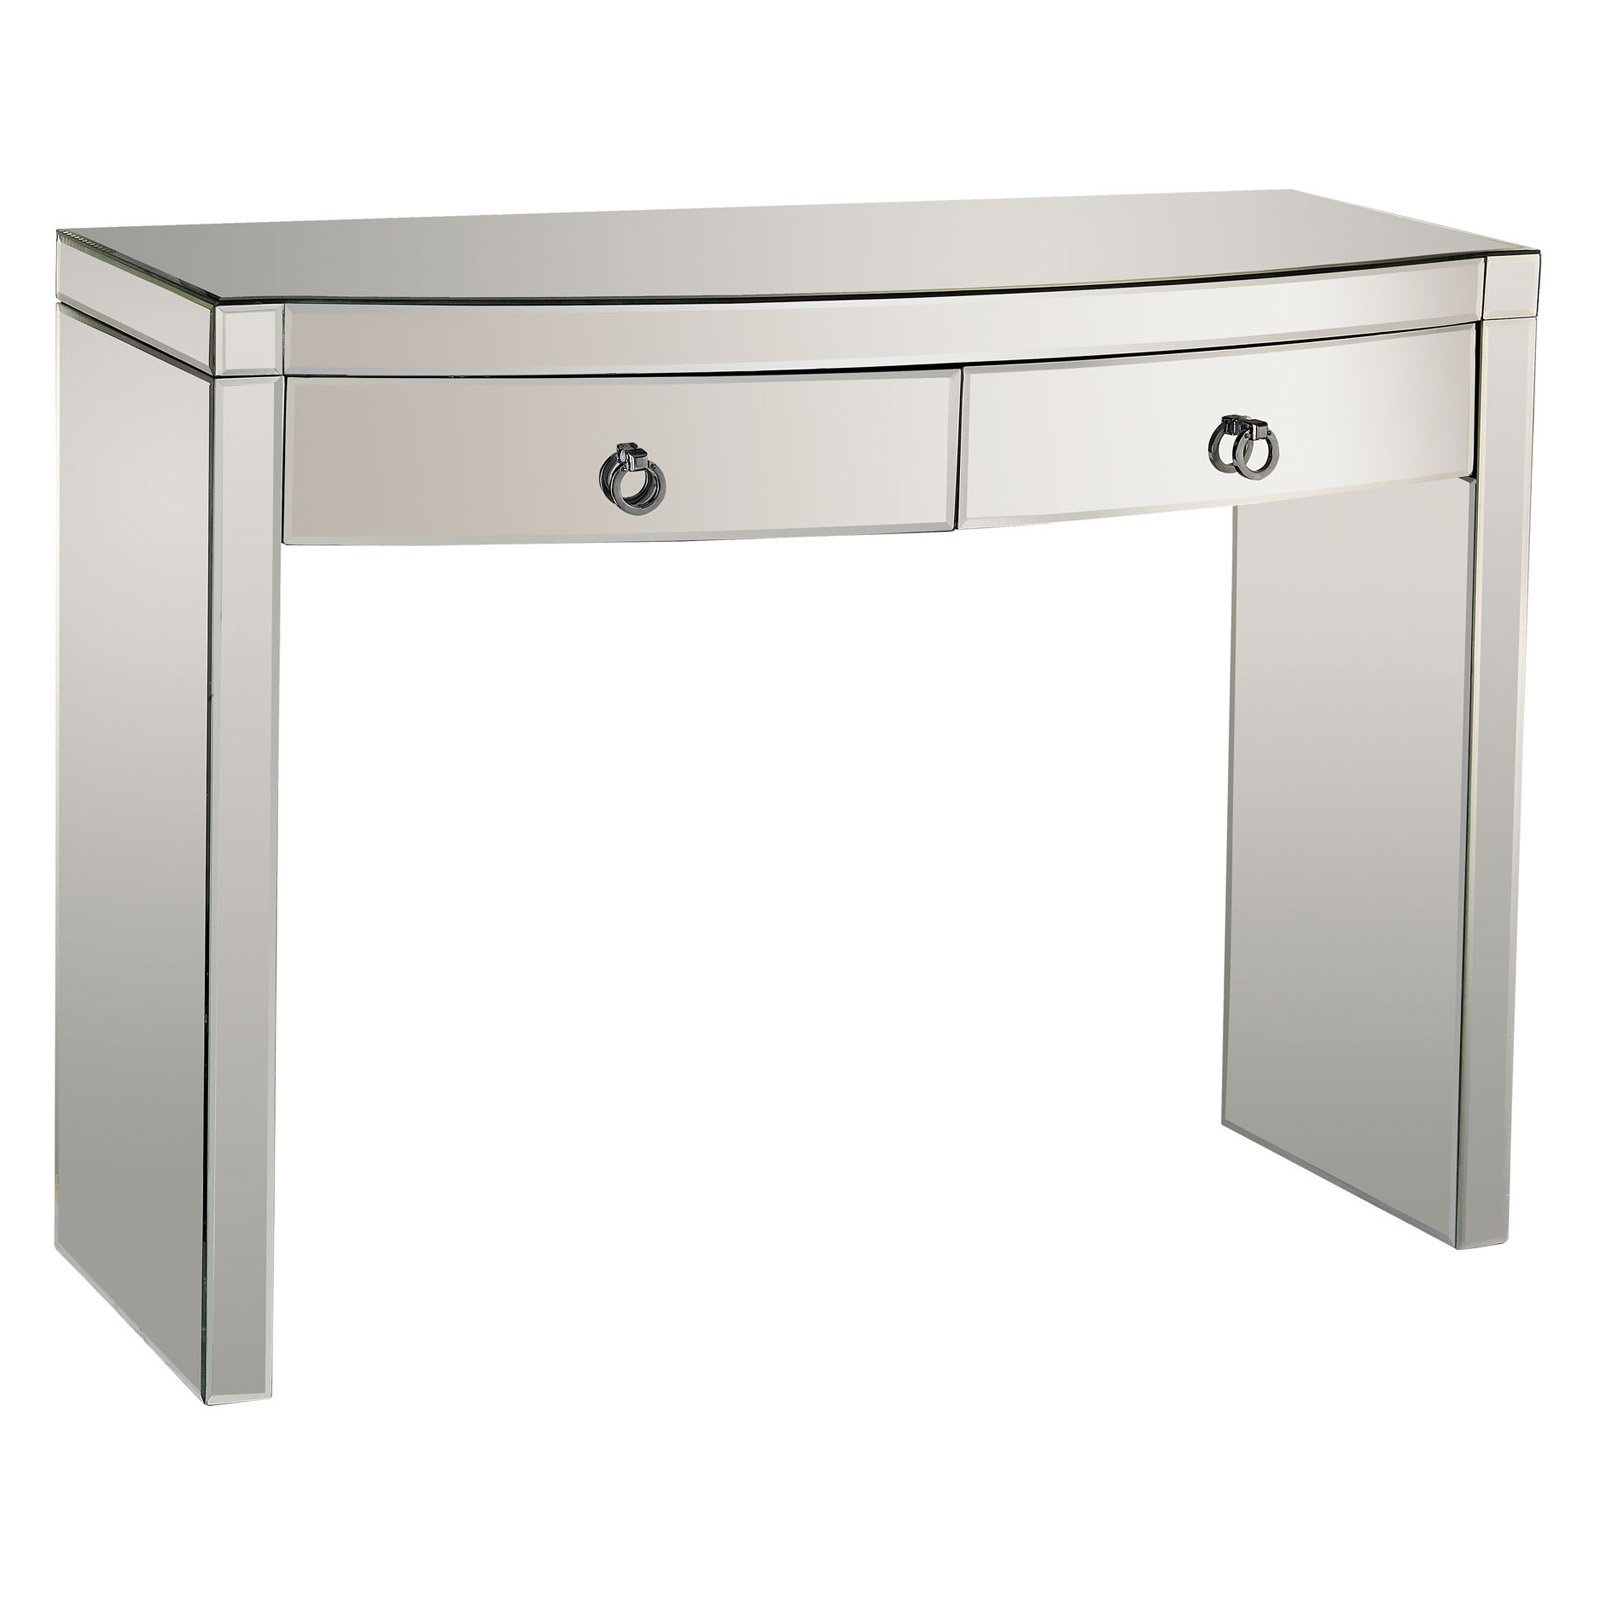 Dimond Home Bow Front Console Table by Dimond Home